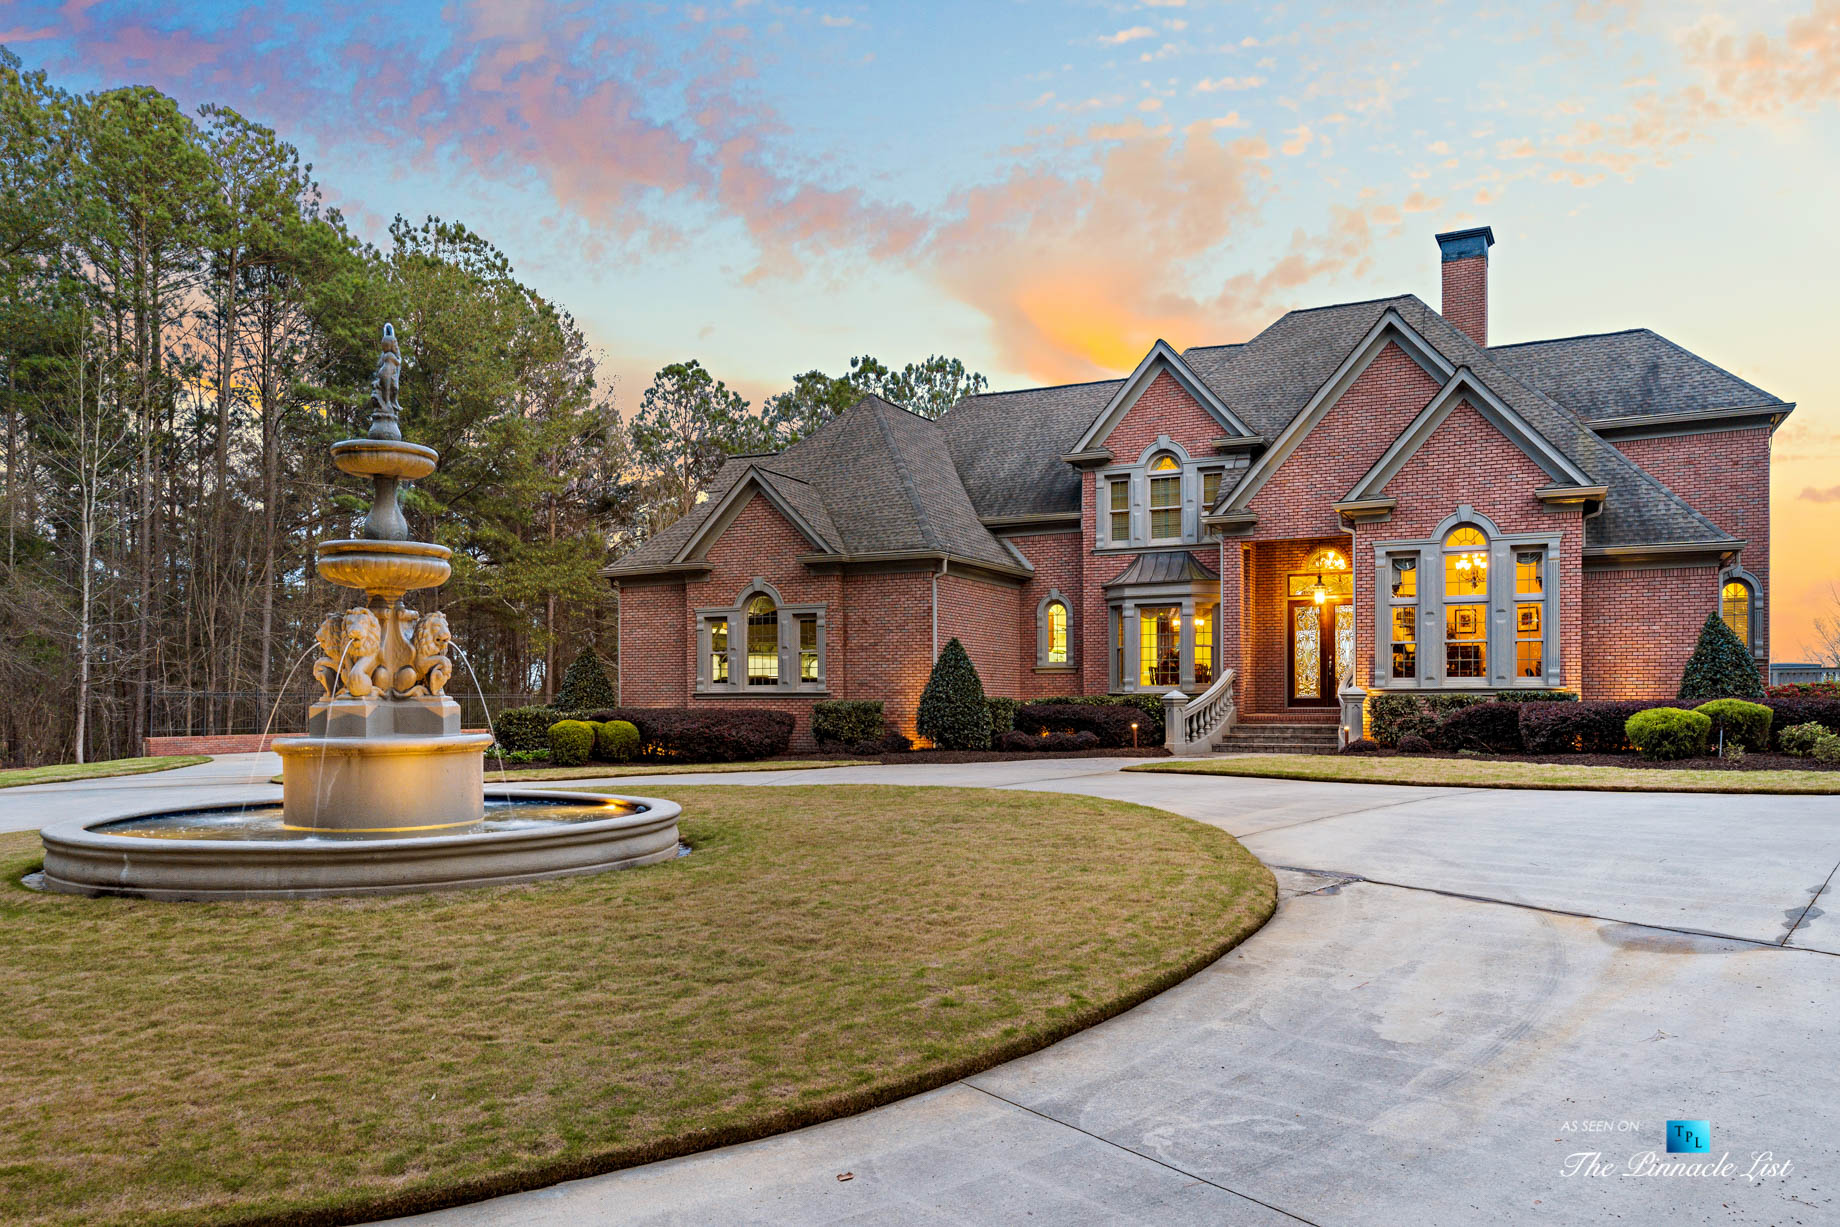 2219 Costley Mill Rd NE, Conyers, GA, USA – Circular Driveway Fountain – Luxury Real Estate – Equestrian Country Home